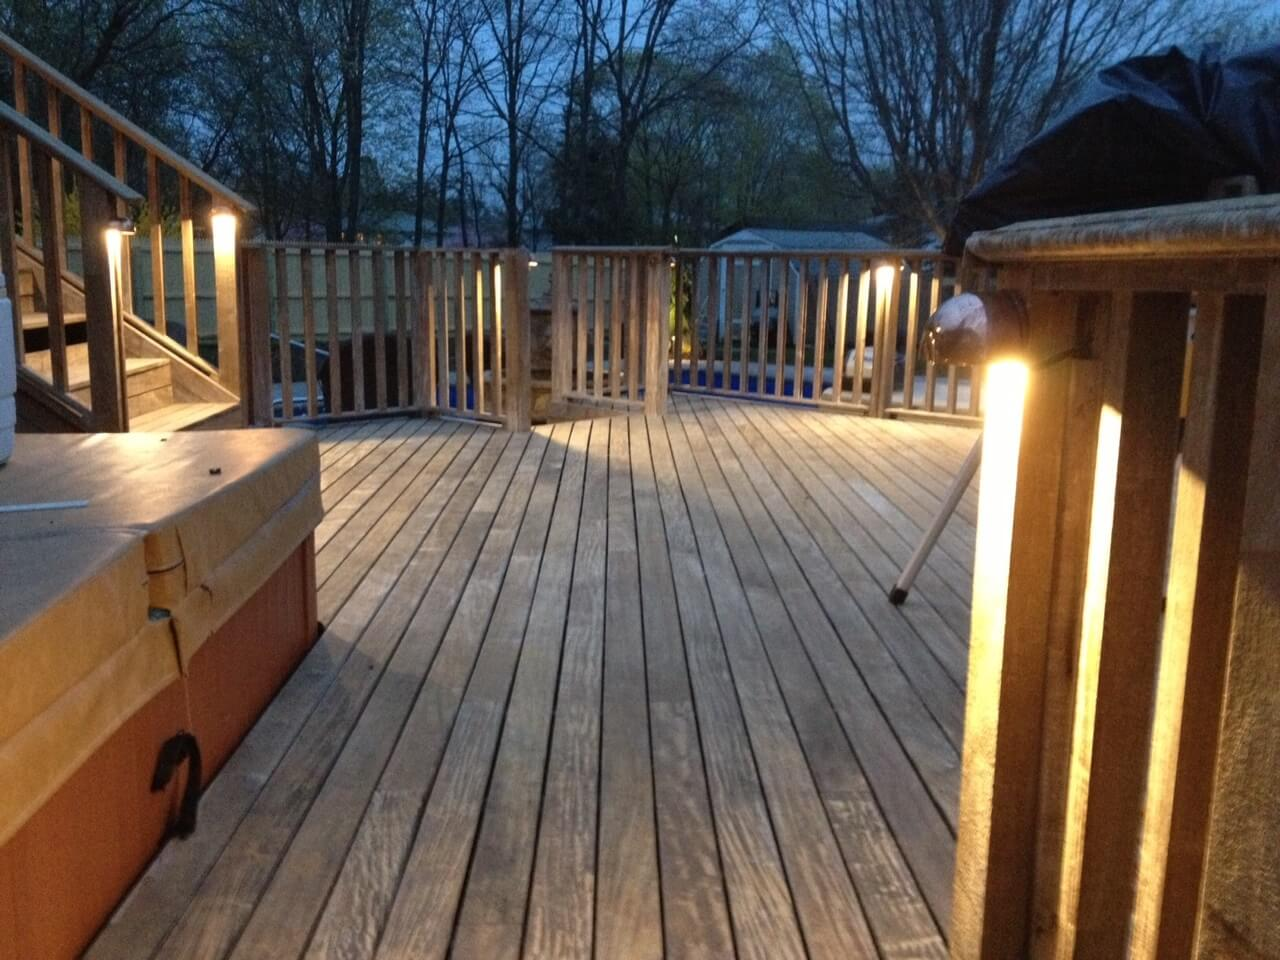 Deck with railing and lights for safety